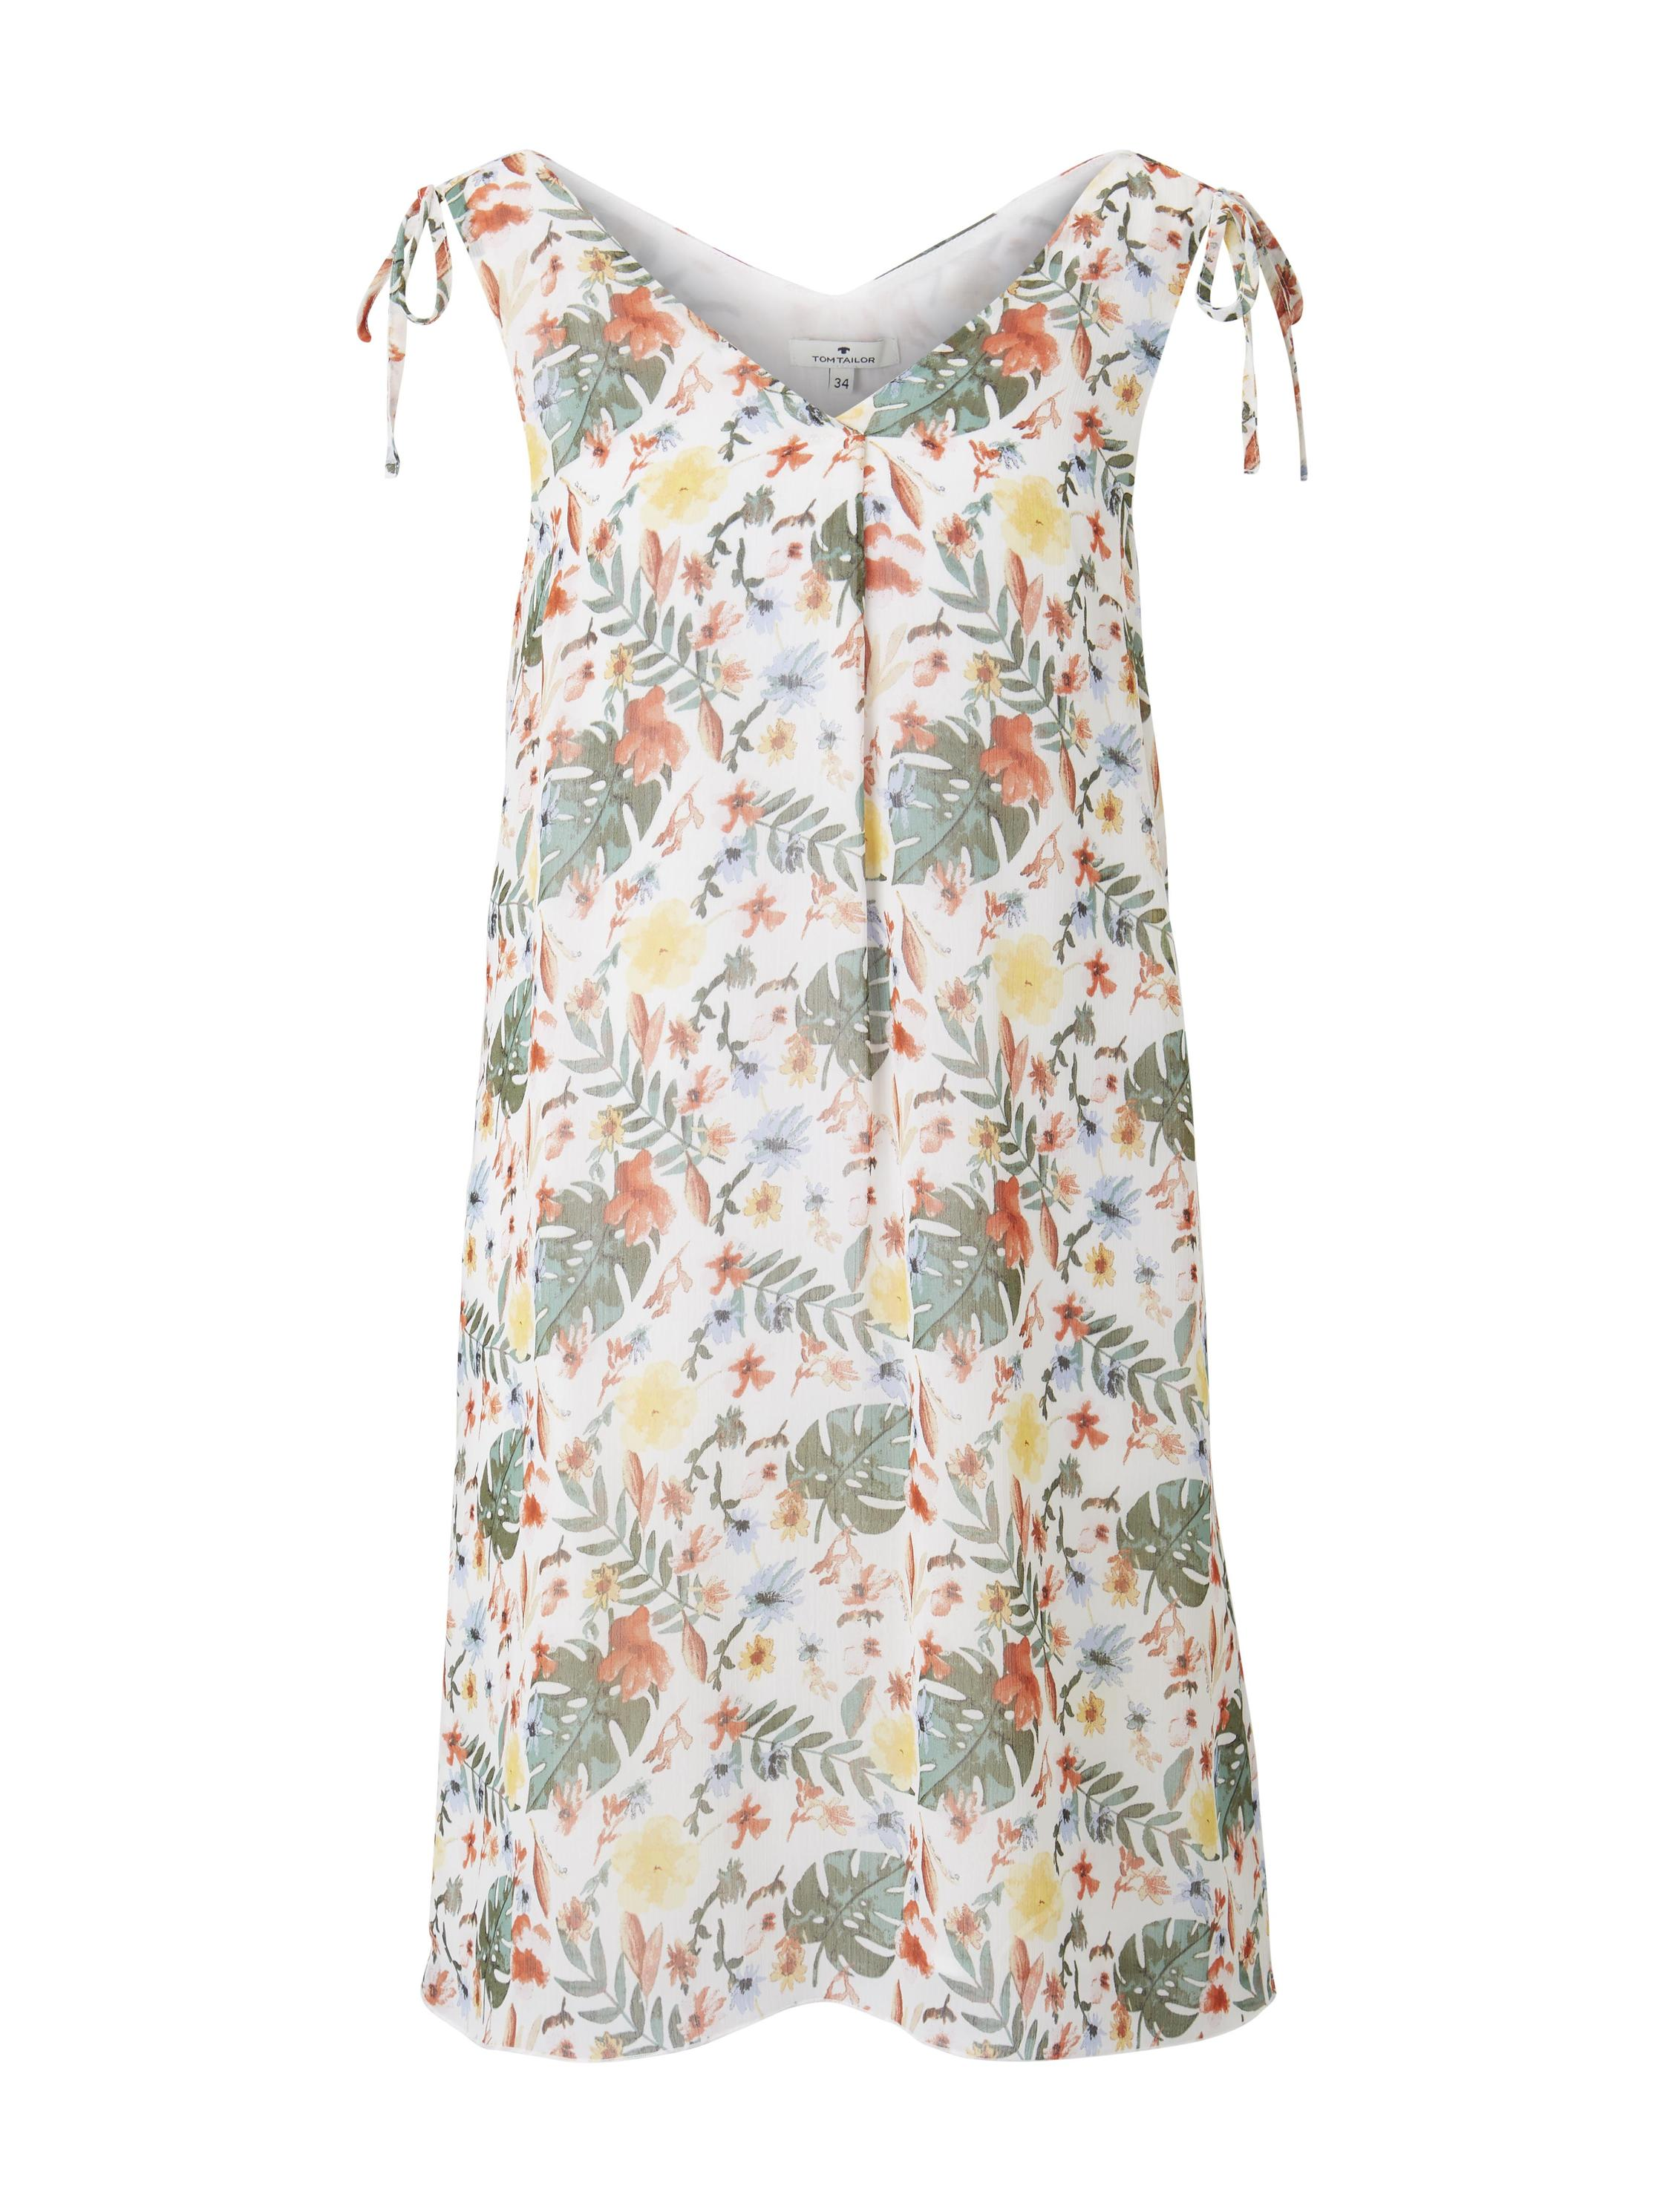 dress chiffon with ties, white watercolor flower design